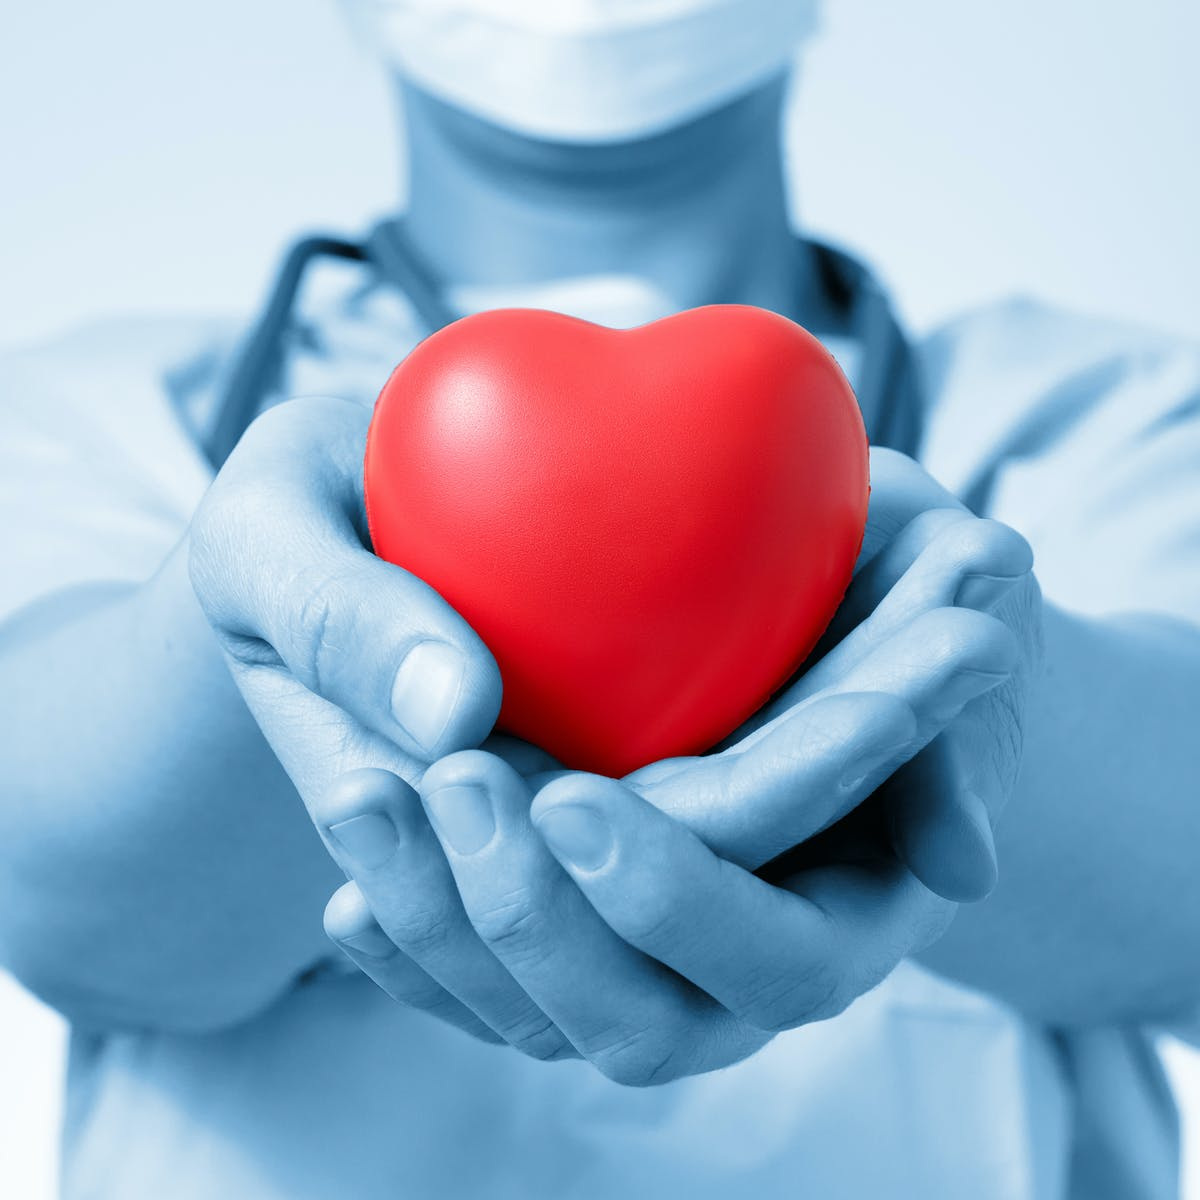 Heart transplant doctors could help more people by accepting ...